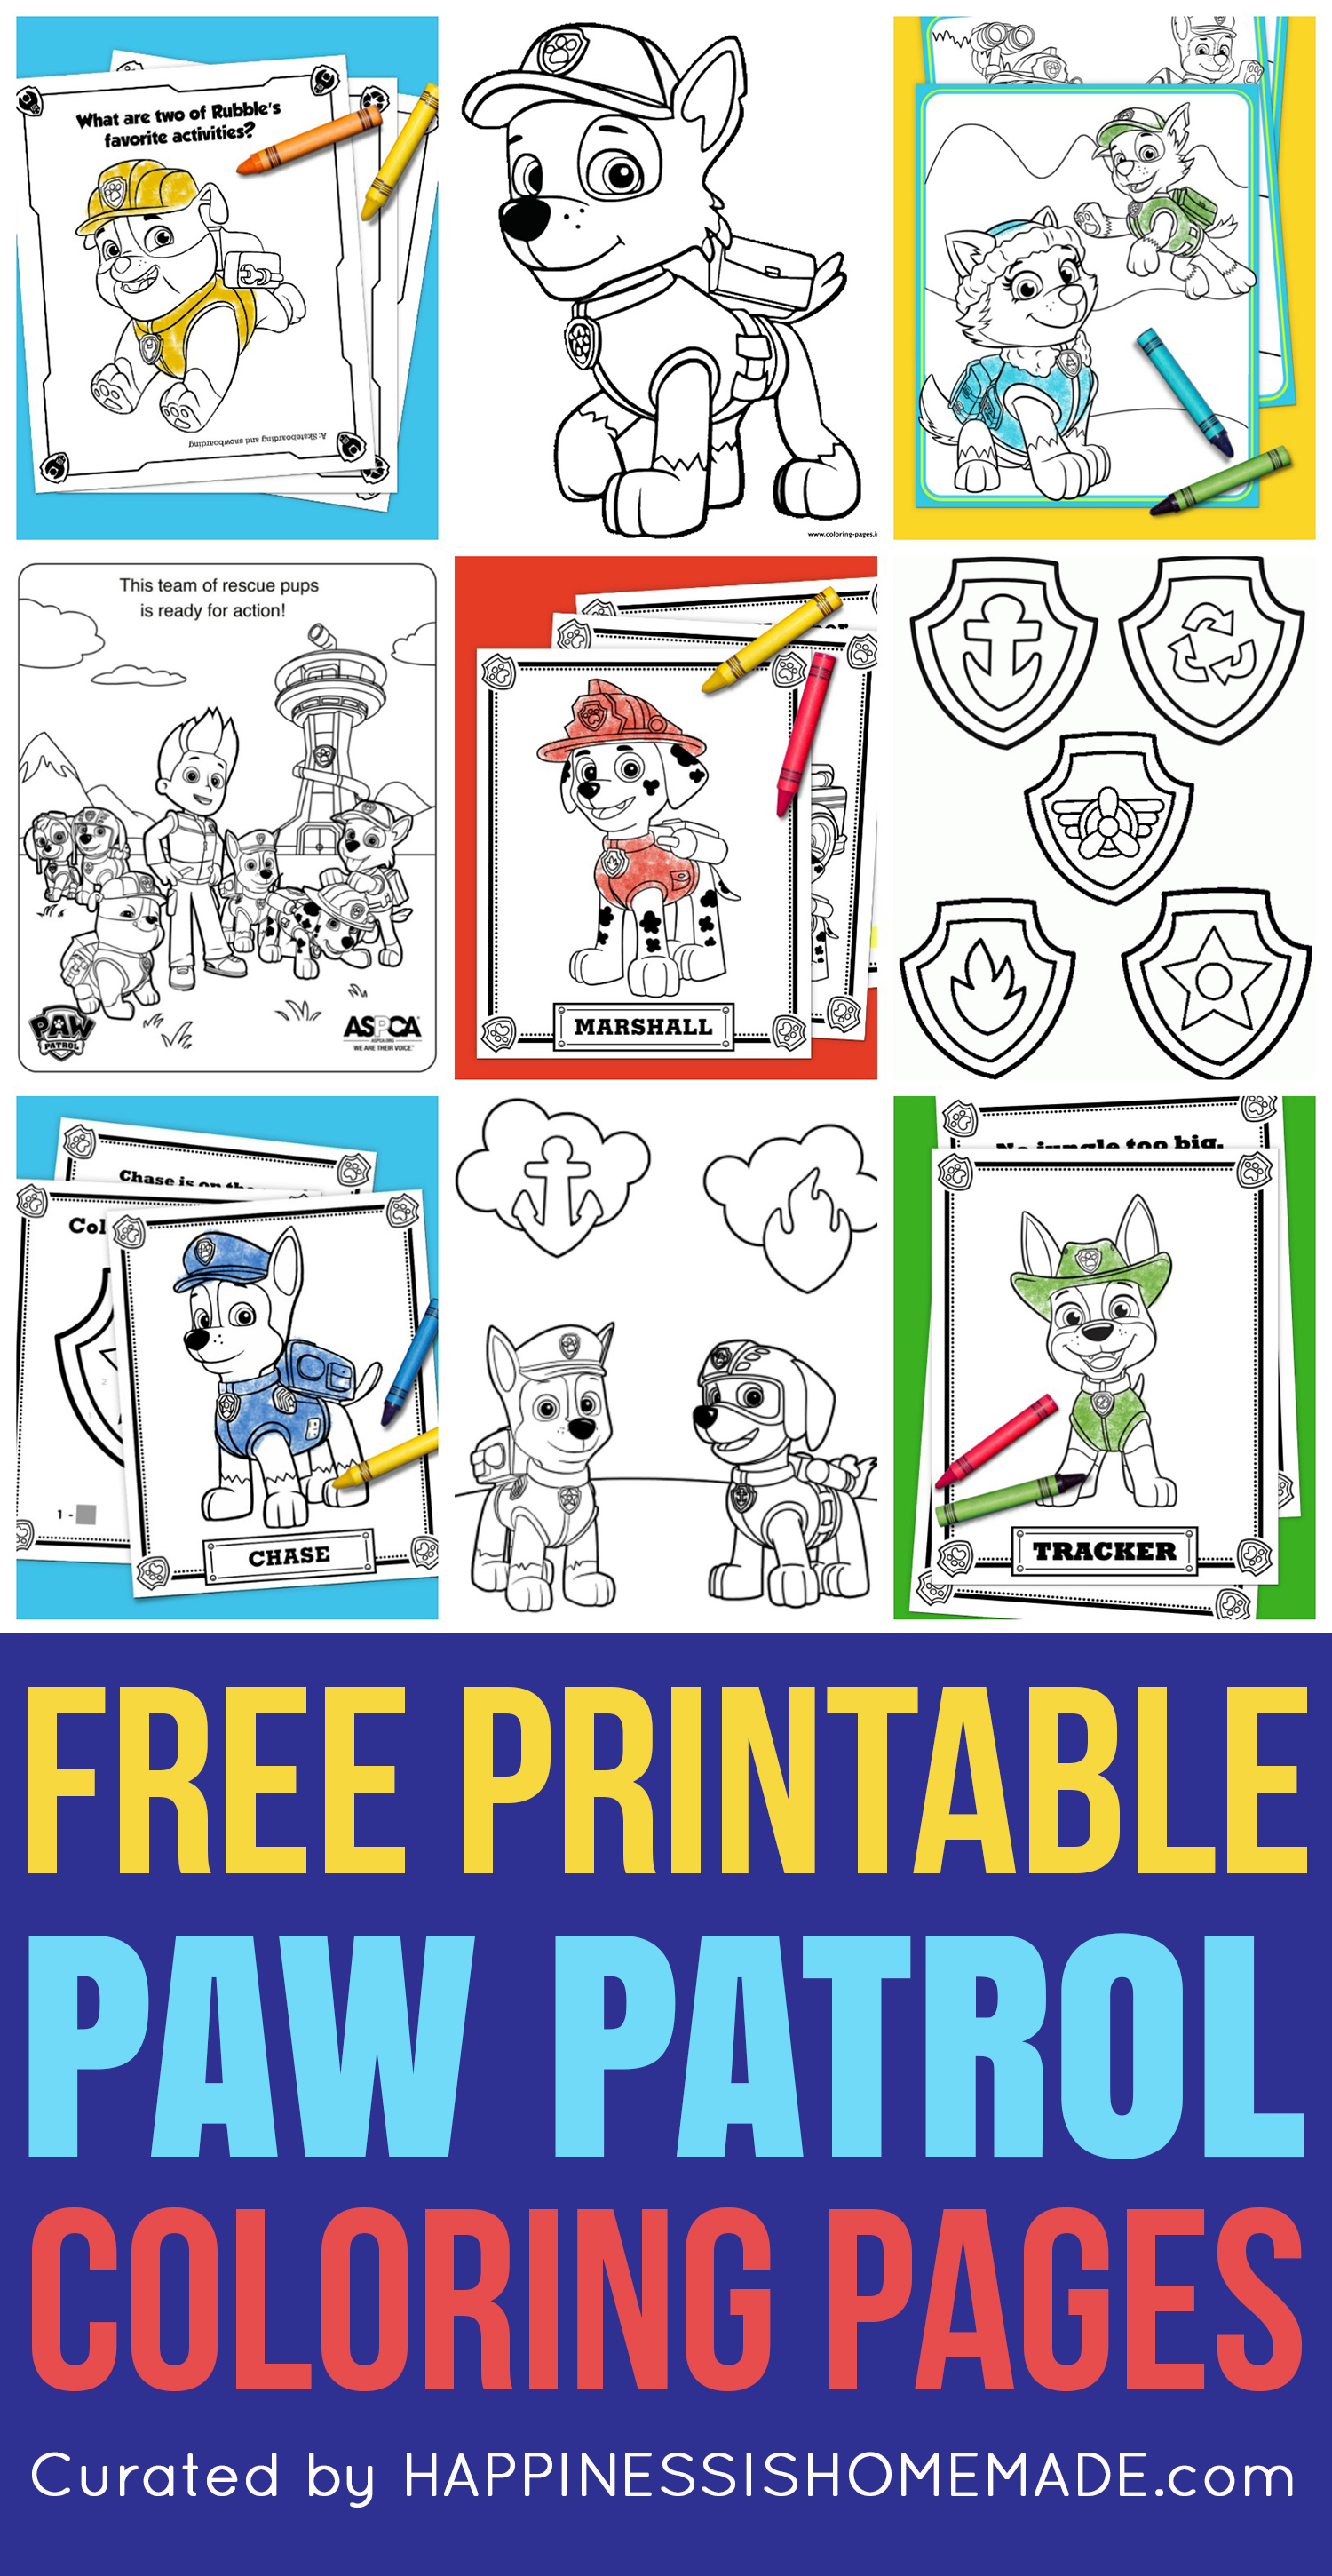 photo about Paw Patrol Printable Pictures identify Totally free PAW Patrol Coloring Webpages - Joy is Selfmade